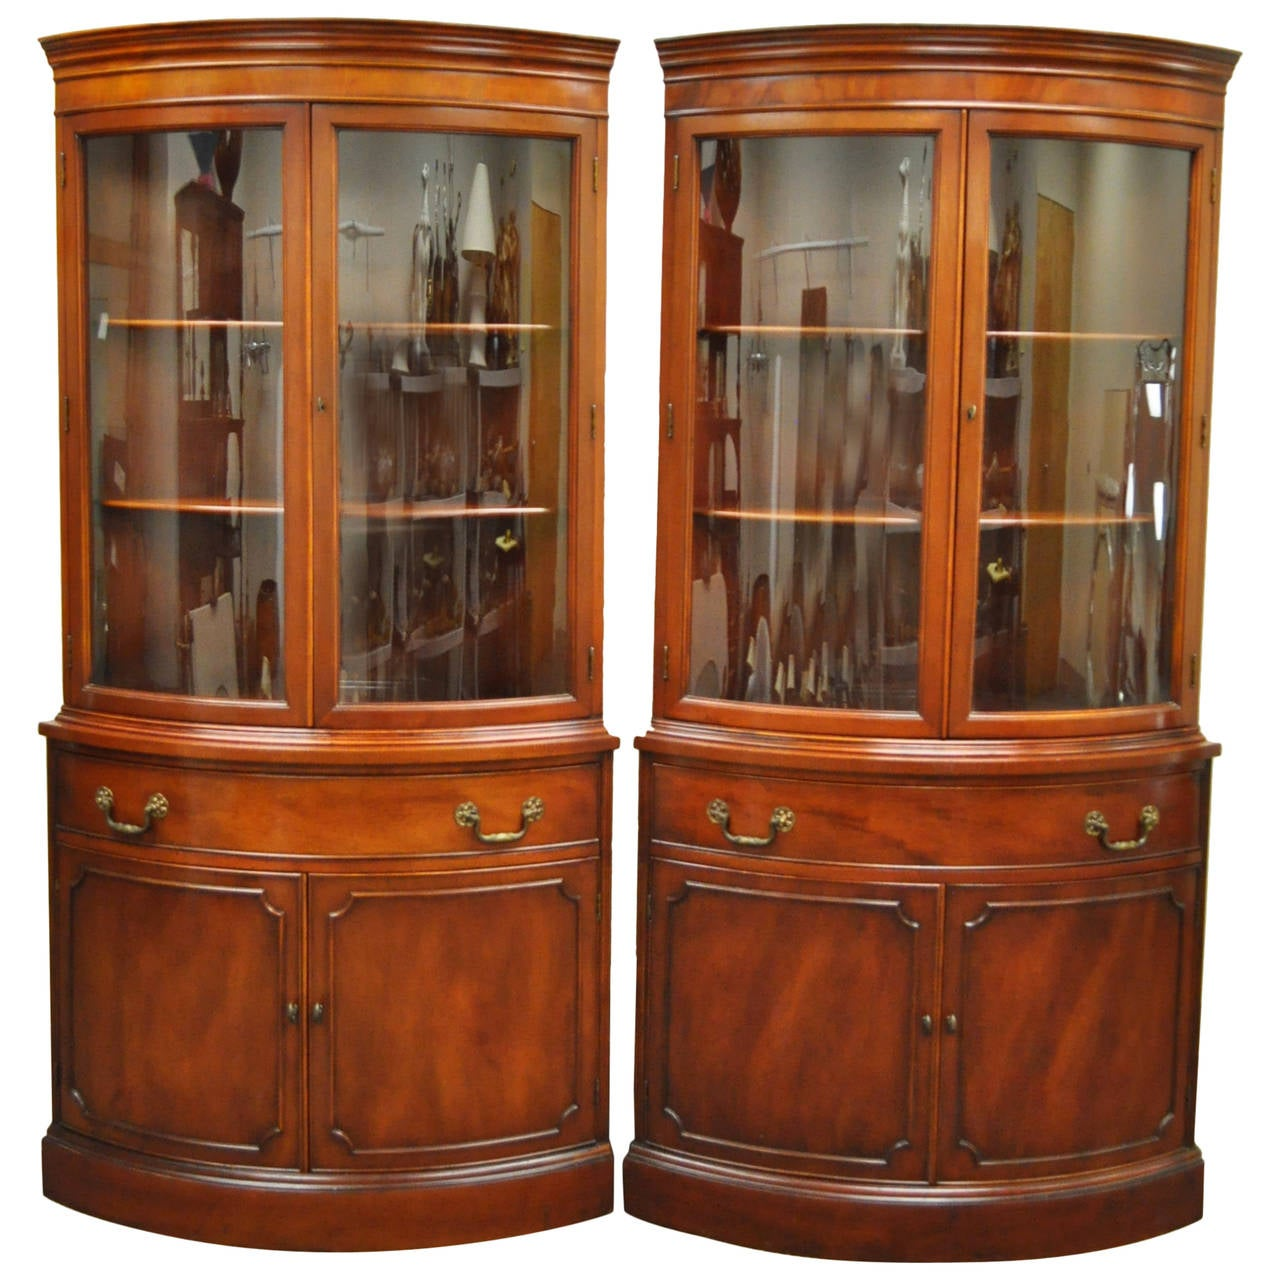 Pair Of 1940s Curved Glass Demilune Form Mahogany Corner China Cabinets At 1stdibs